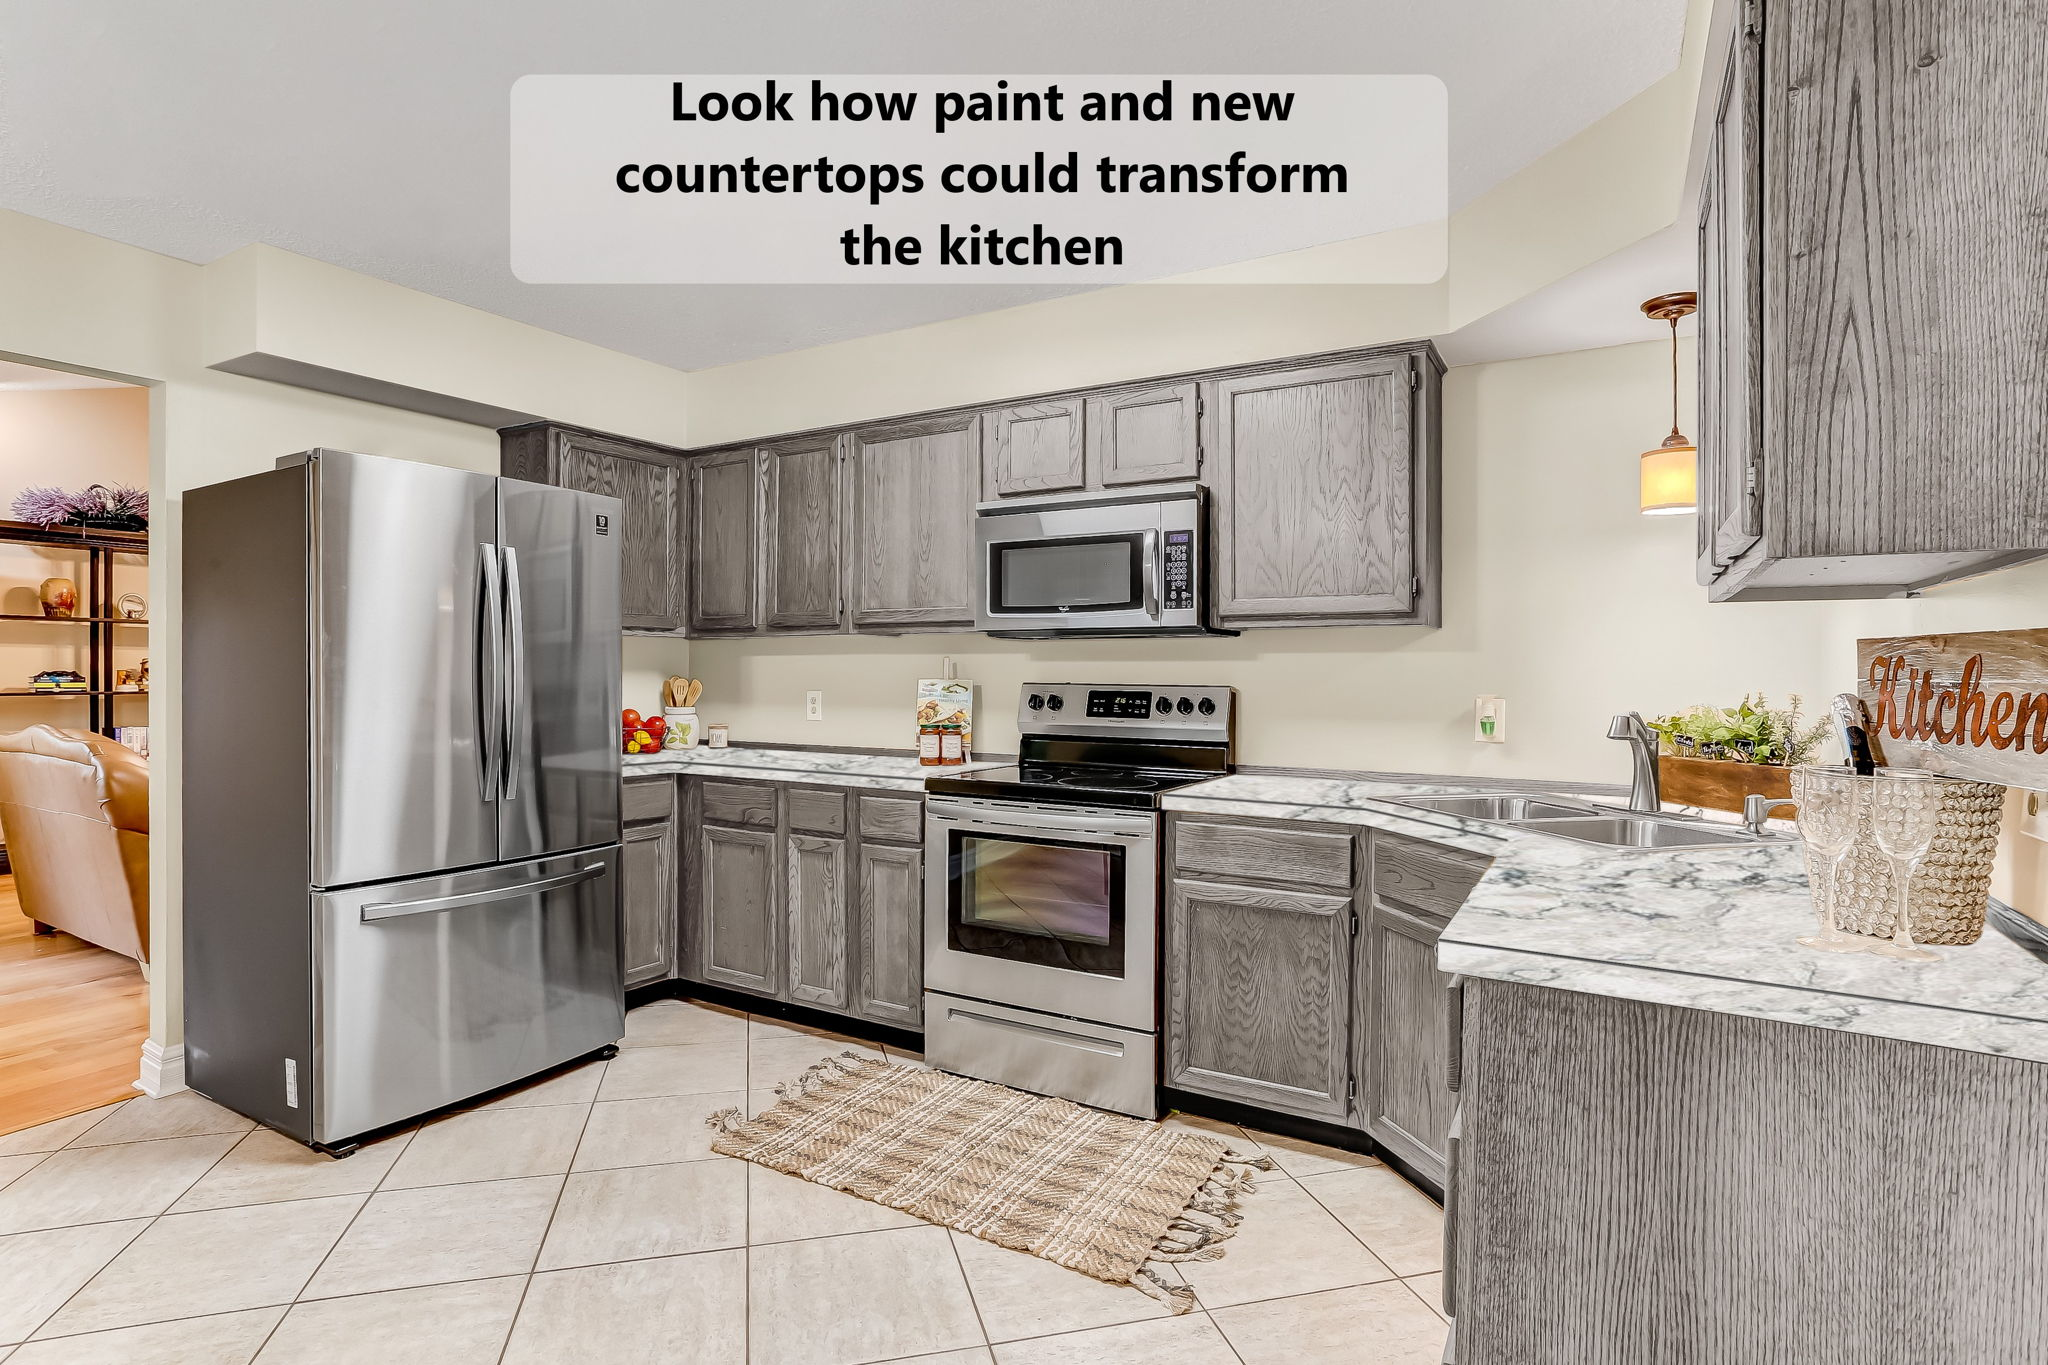 Change-up the kitchen for minimal cost